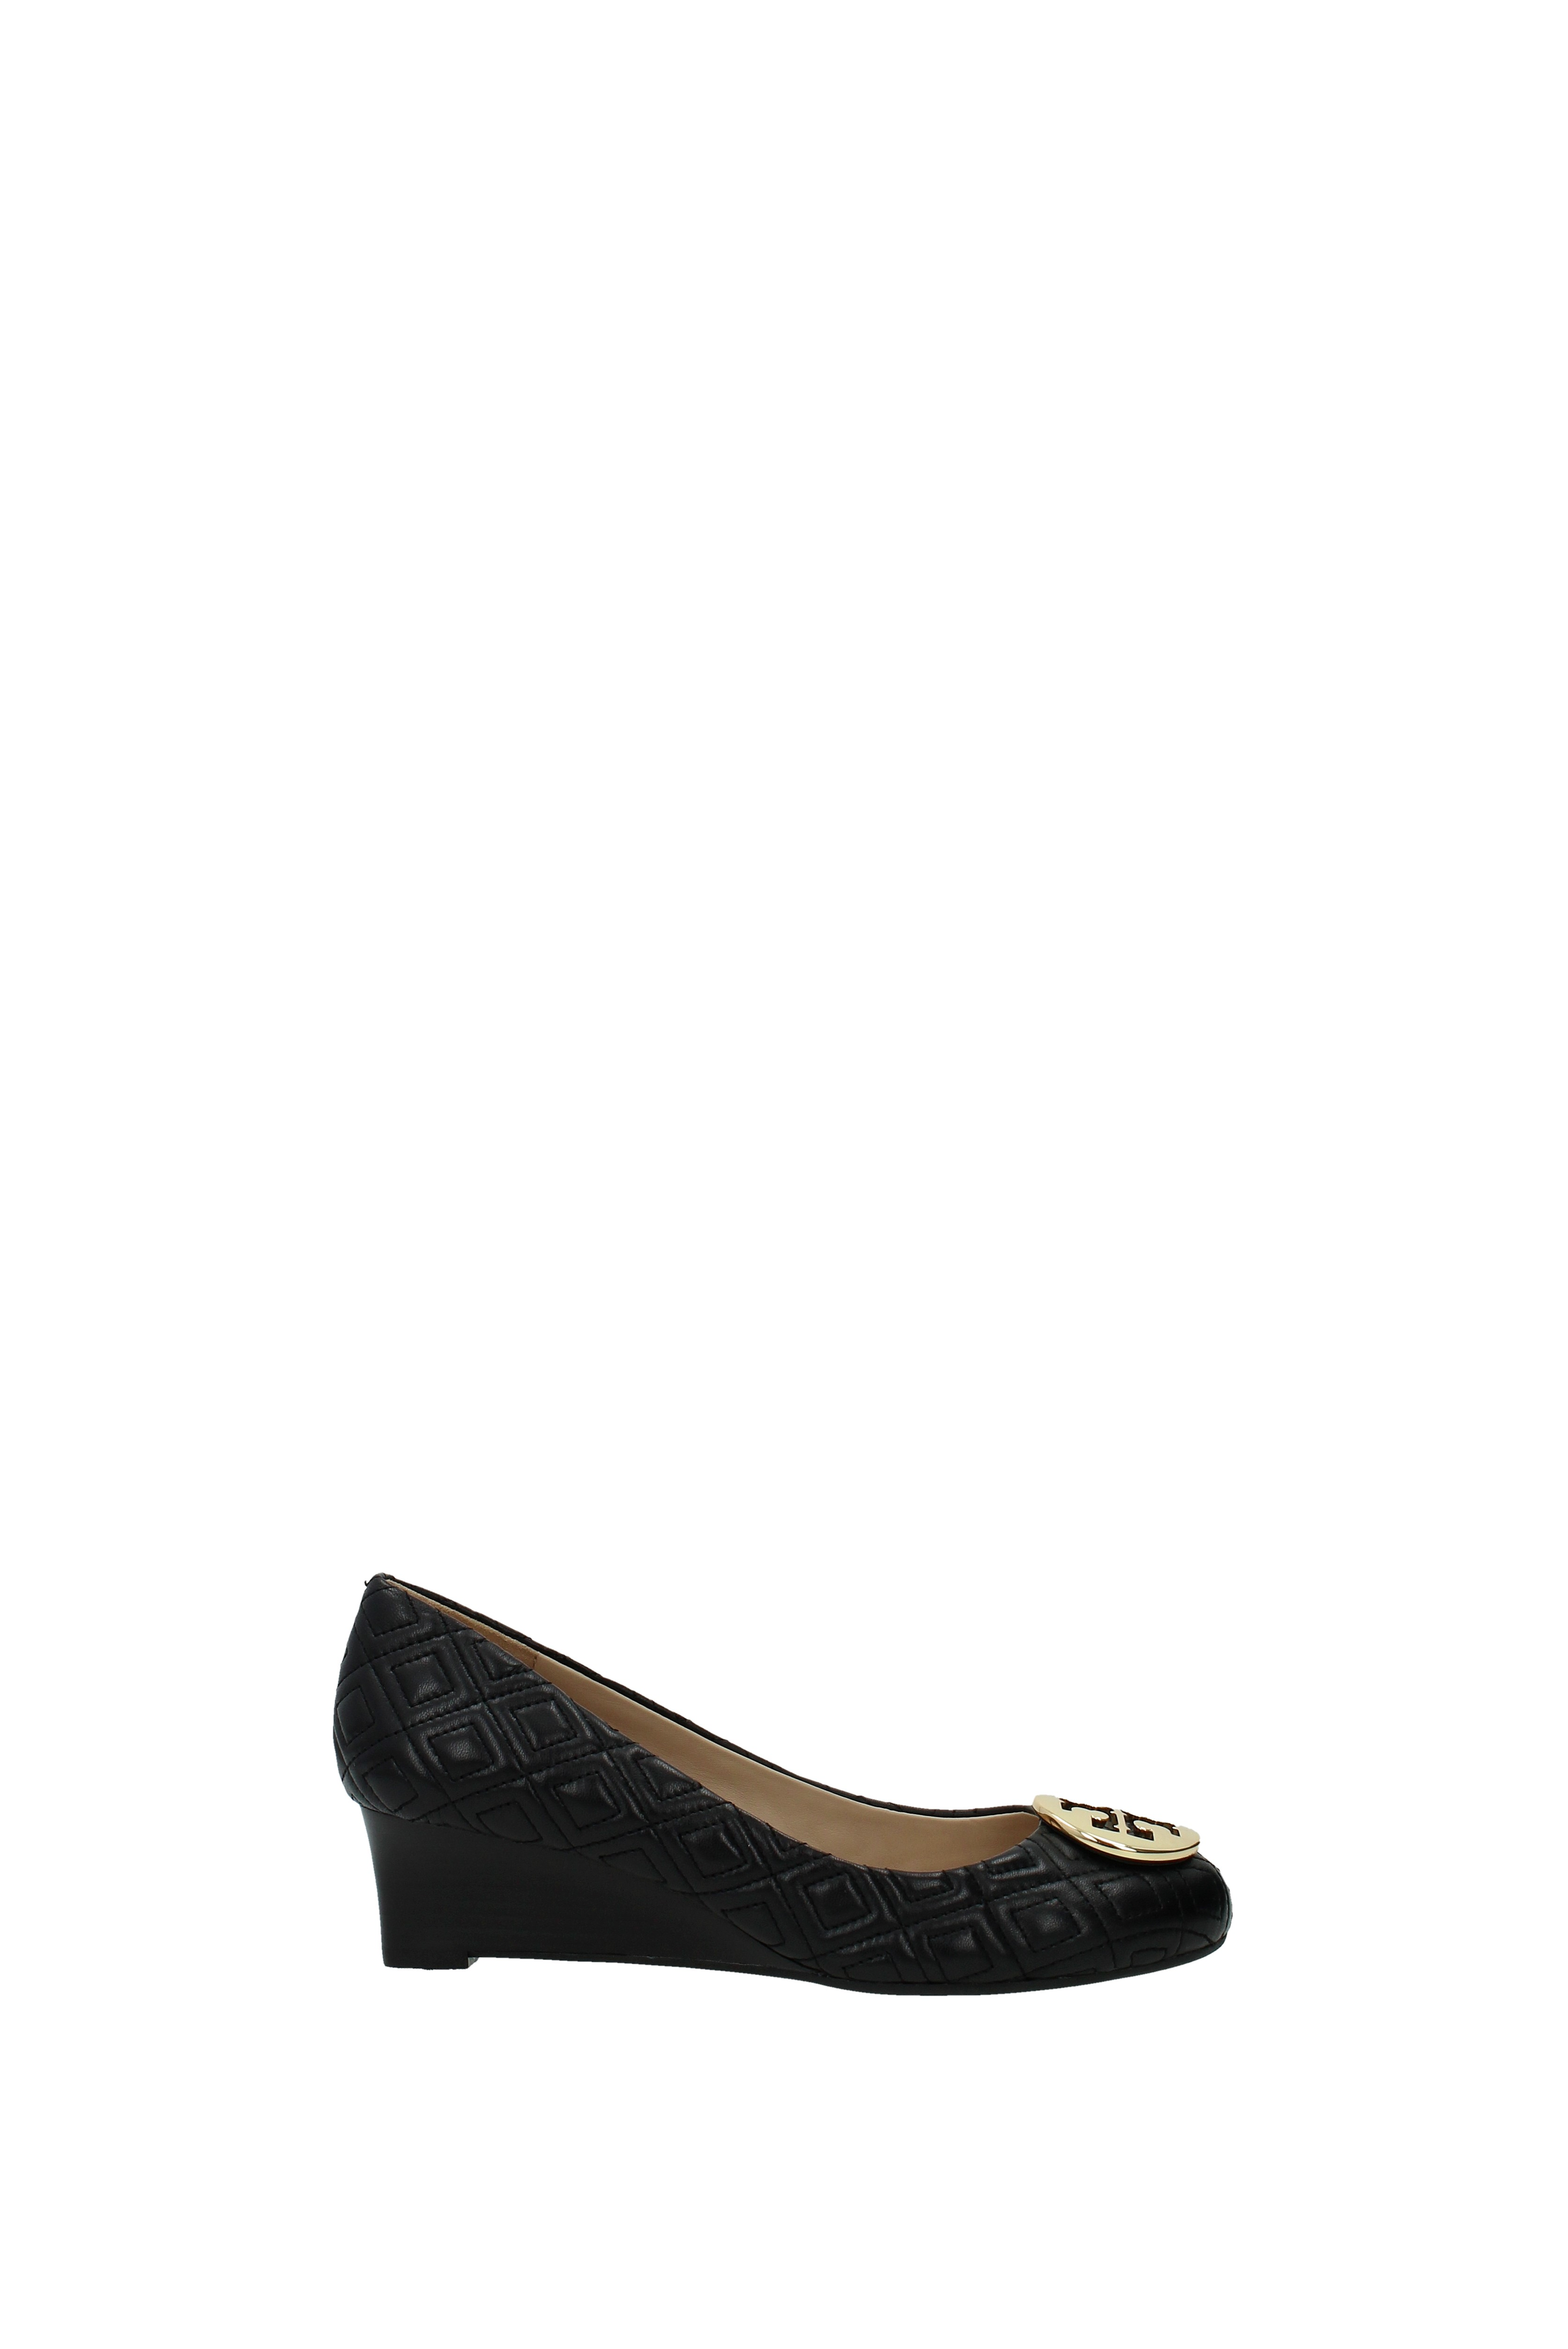 Zeppe-Tory-Burch-marion-Donna-Pelle-32895